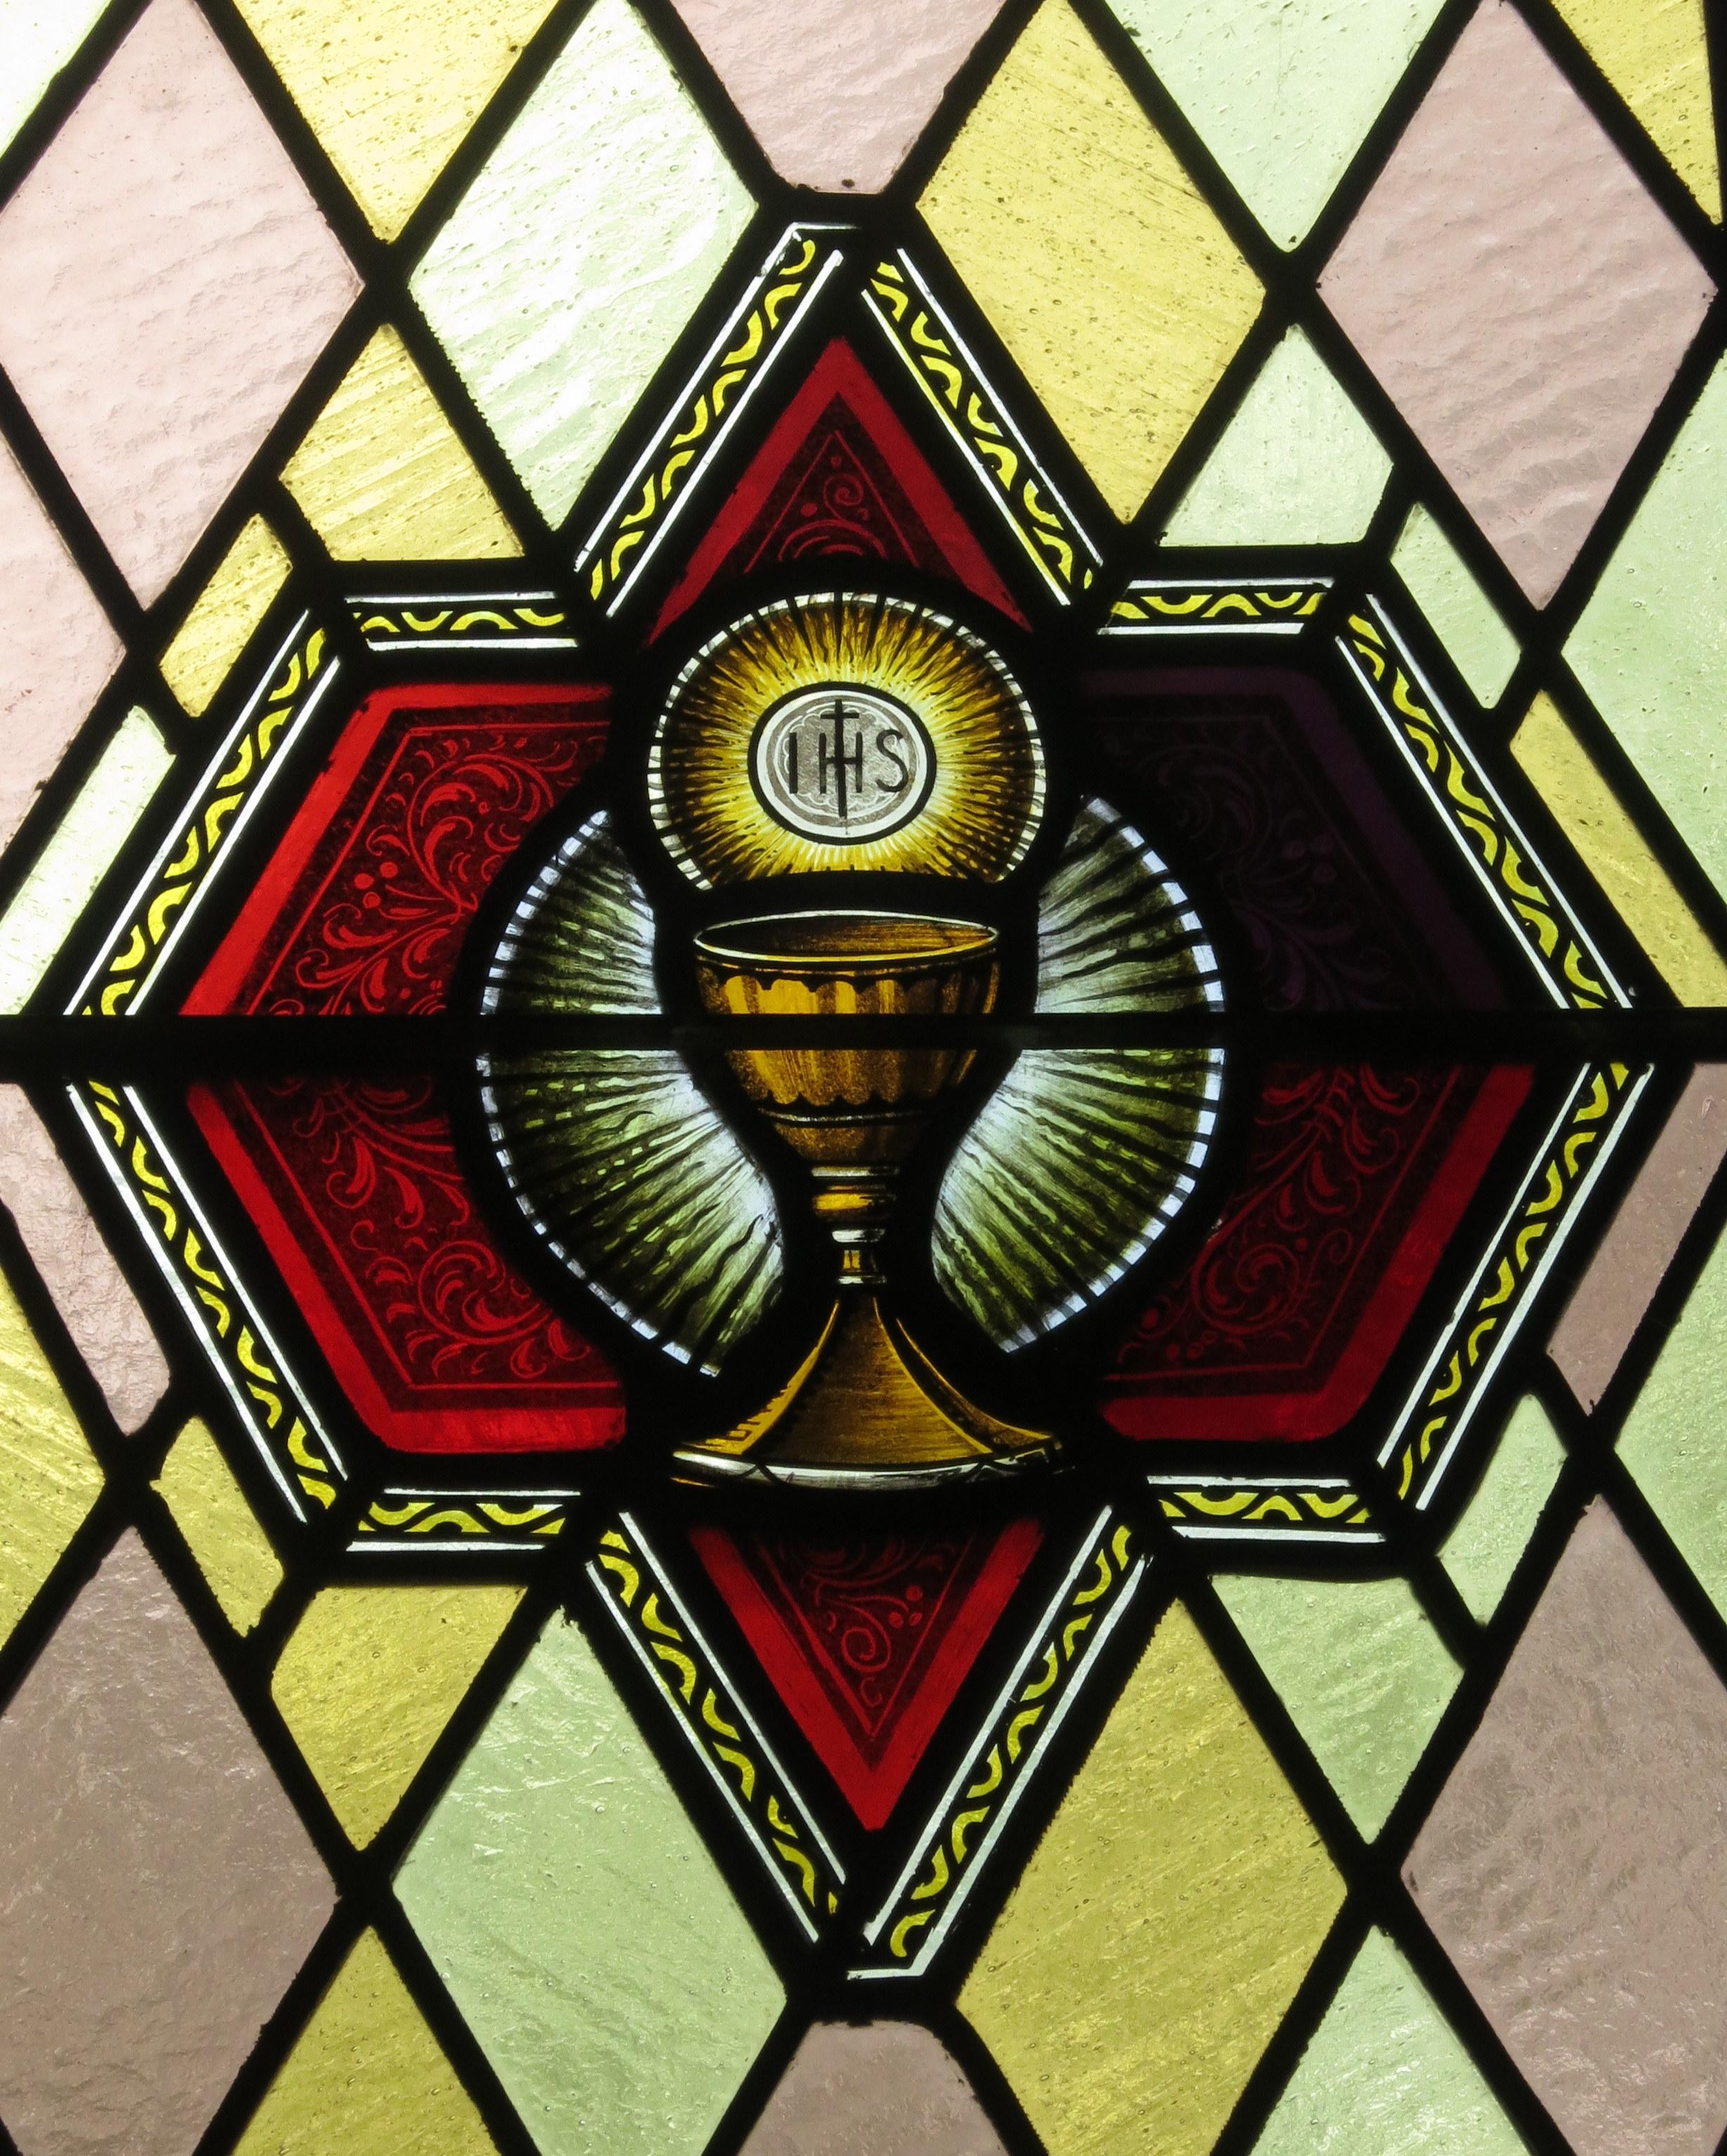 Immaculate_Conception_Catholic_Church_(Port_Clinton,_Ohio)_-_stained_glass,_Eucharist.jpg